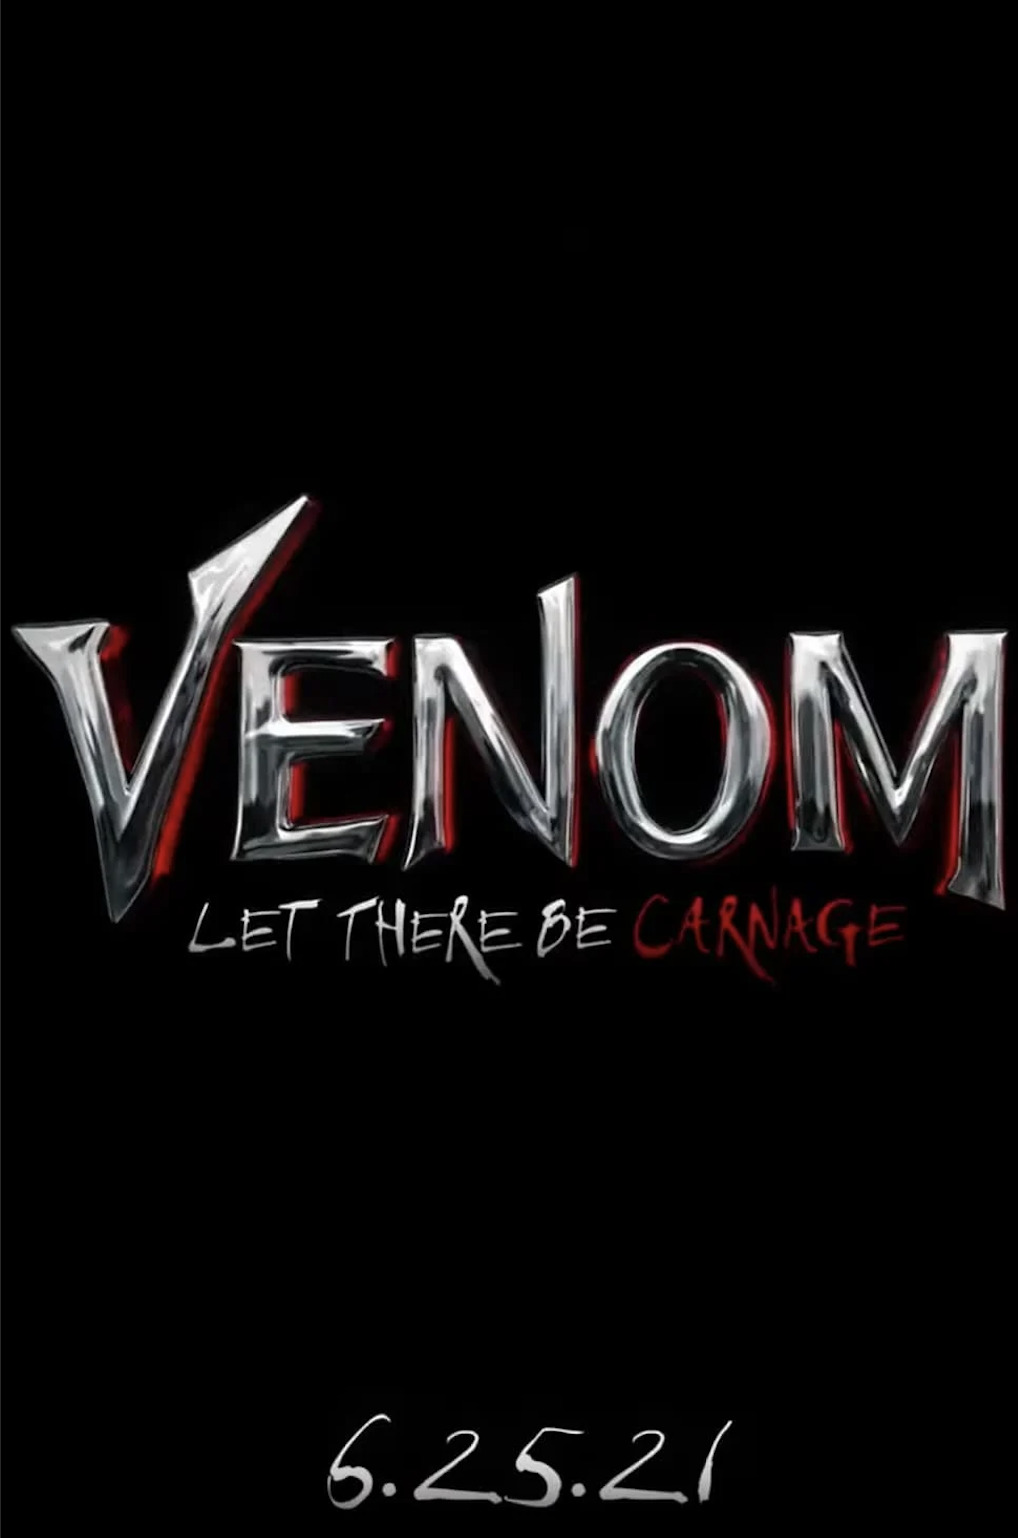 Venom: Let There Be Carnage movie poster from CinemaBlend